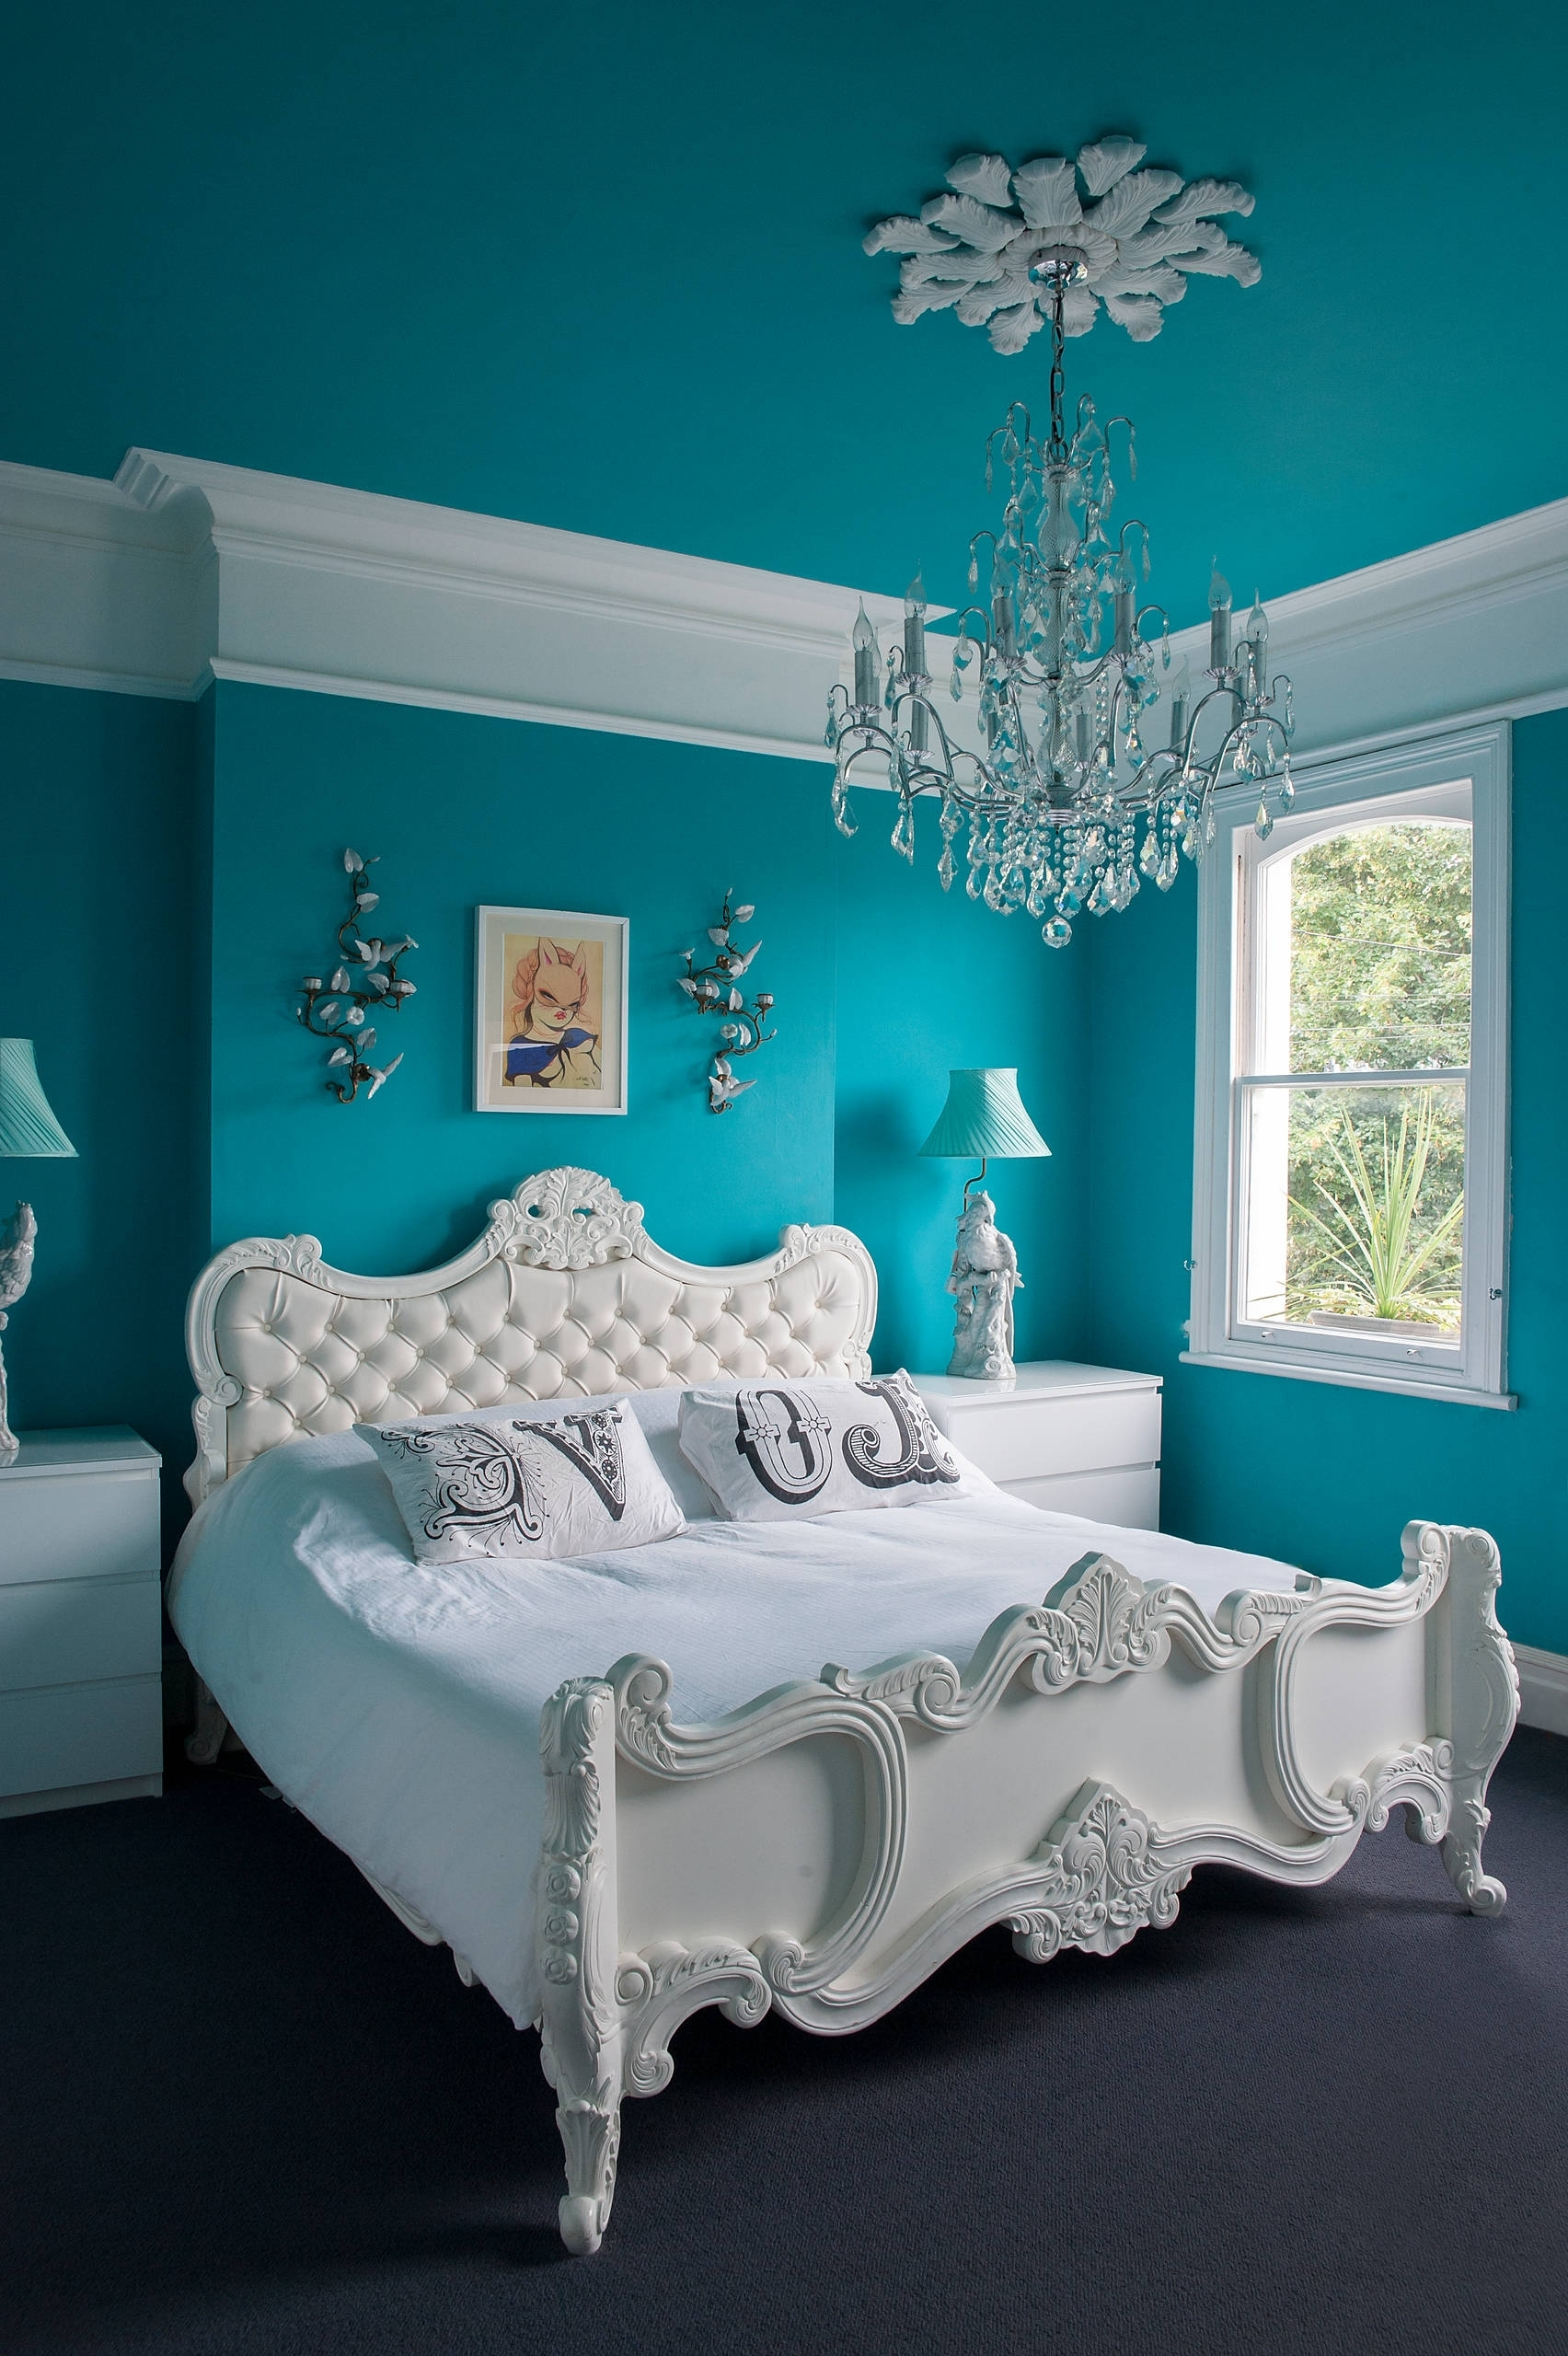 Bedroom: Turquoise Room Ideas For Modern Bedroom Design Idea Pertaining To Most Popular Turquoise Bedroom Chandeliers (View 2 of 20)